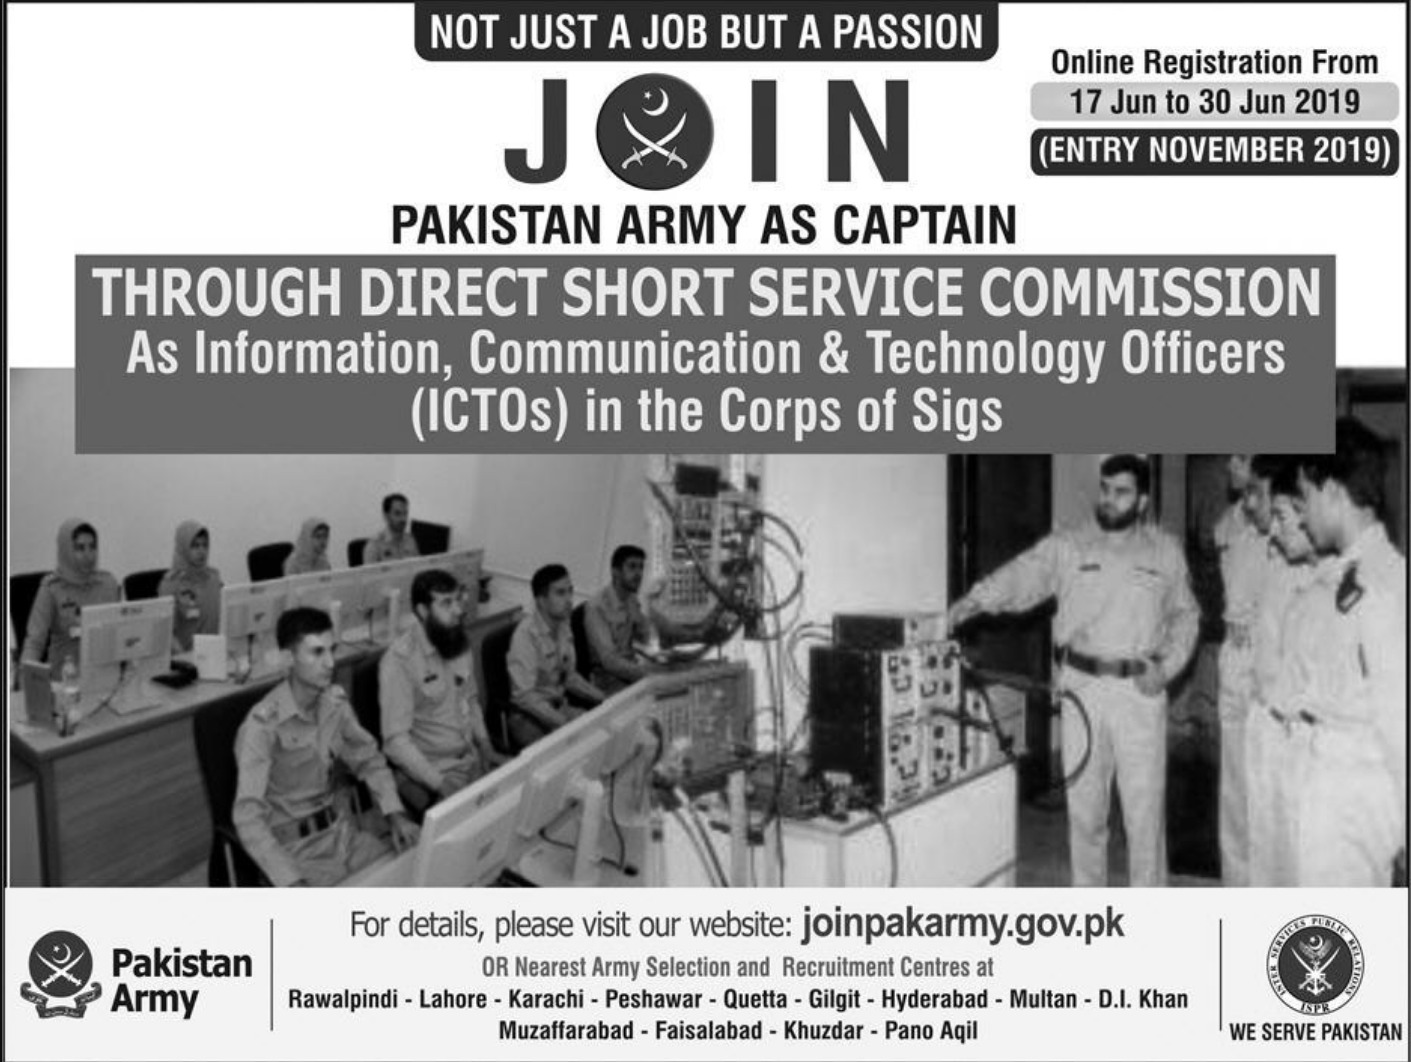 Join Pakistan Army as Captain through Direct Short Service Commission June 2019